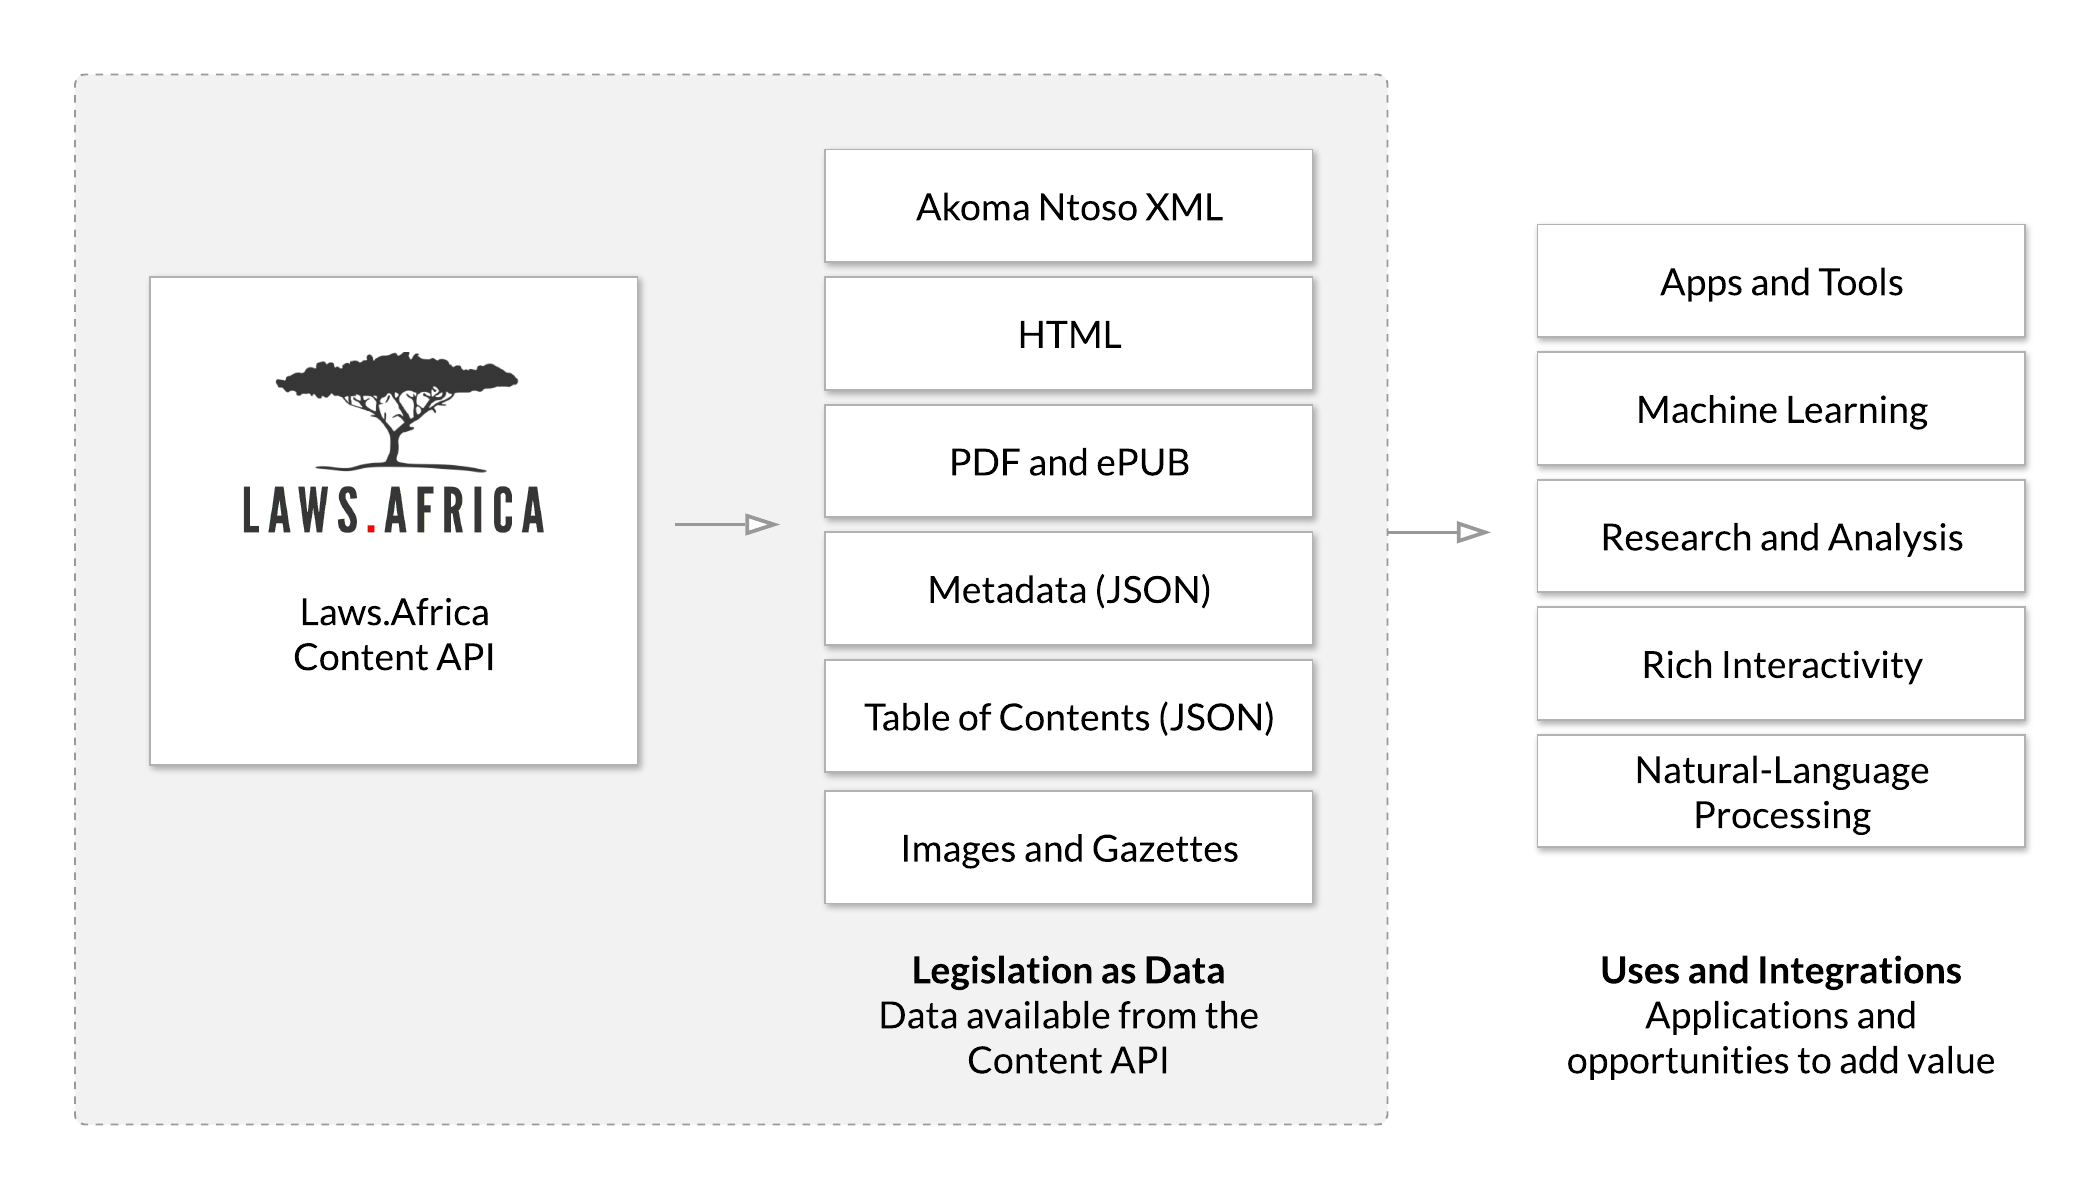 Laws.Africa Content API diagram